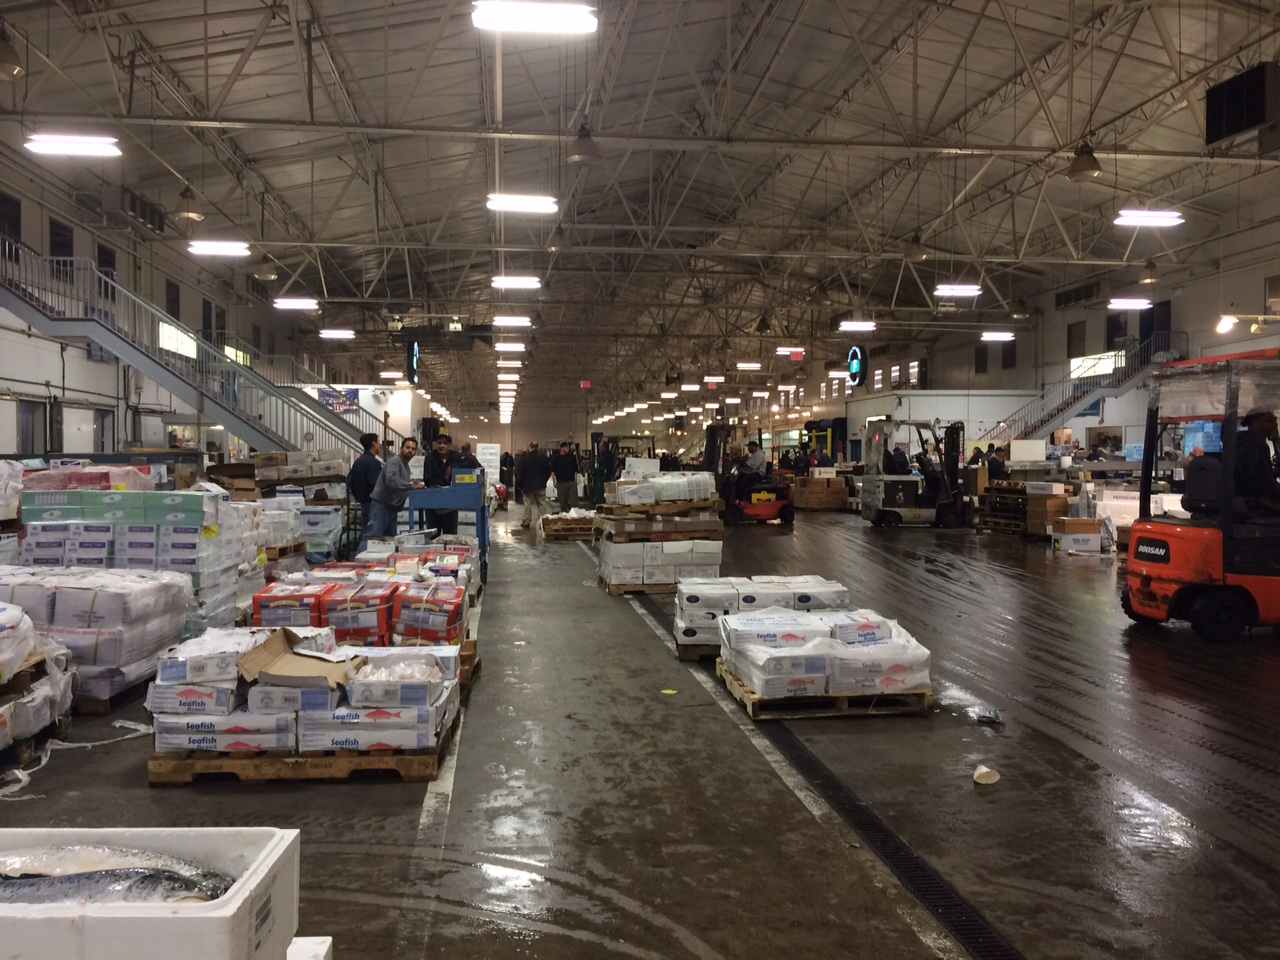 New fulton fish market 3am adventure in the bronx full for Fulton fish market online